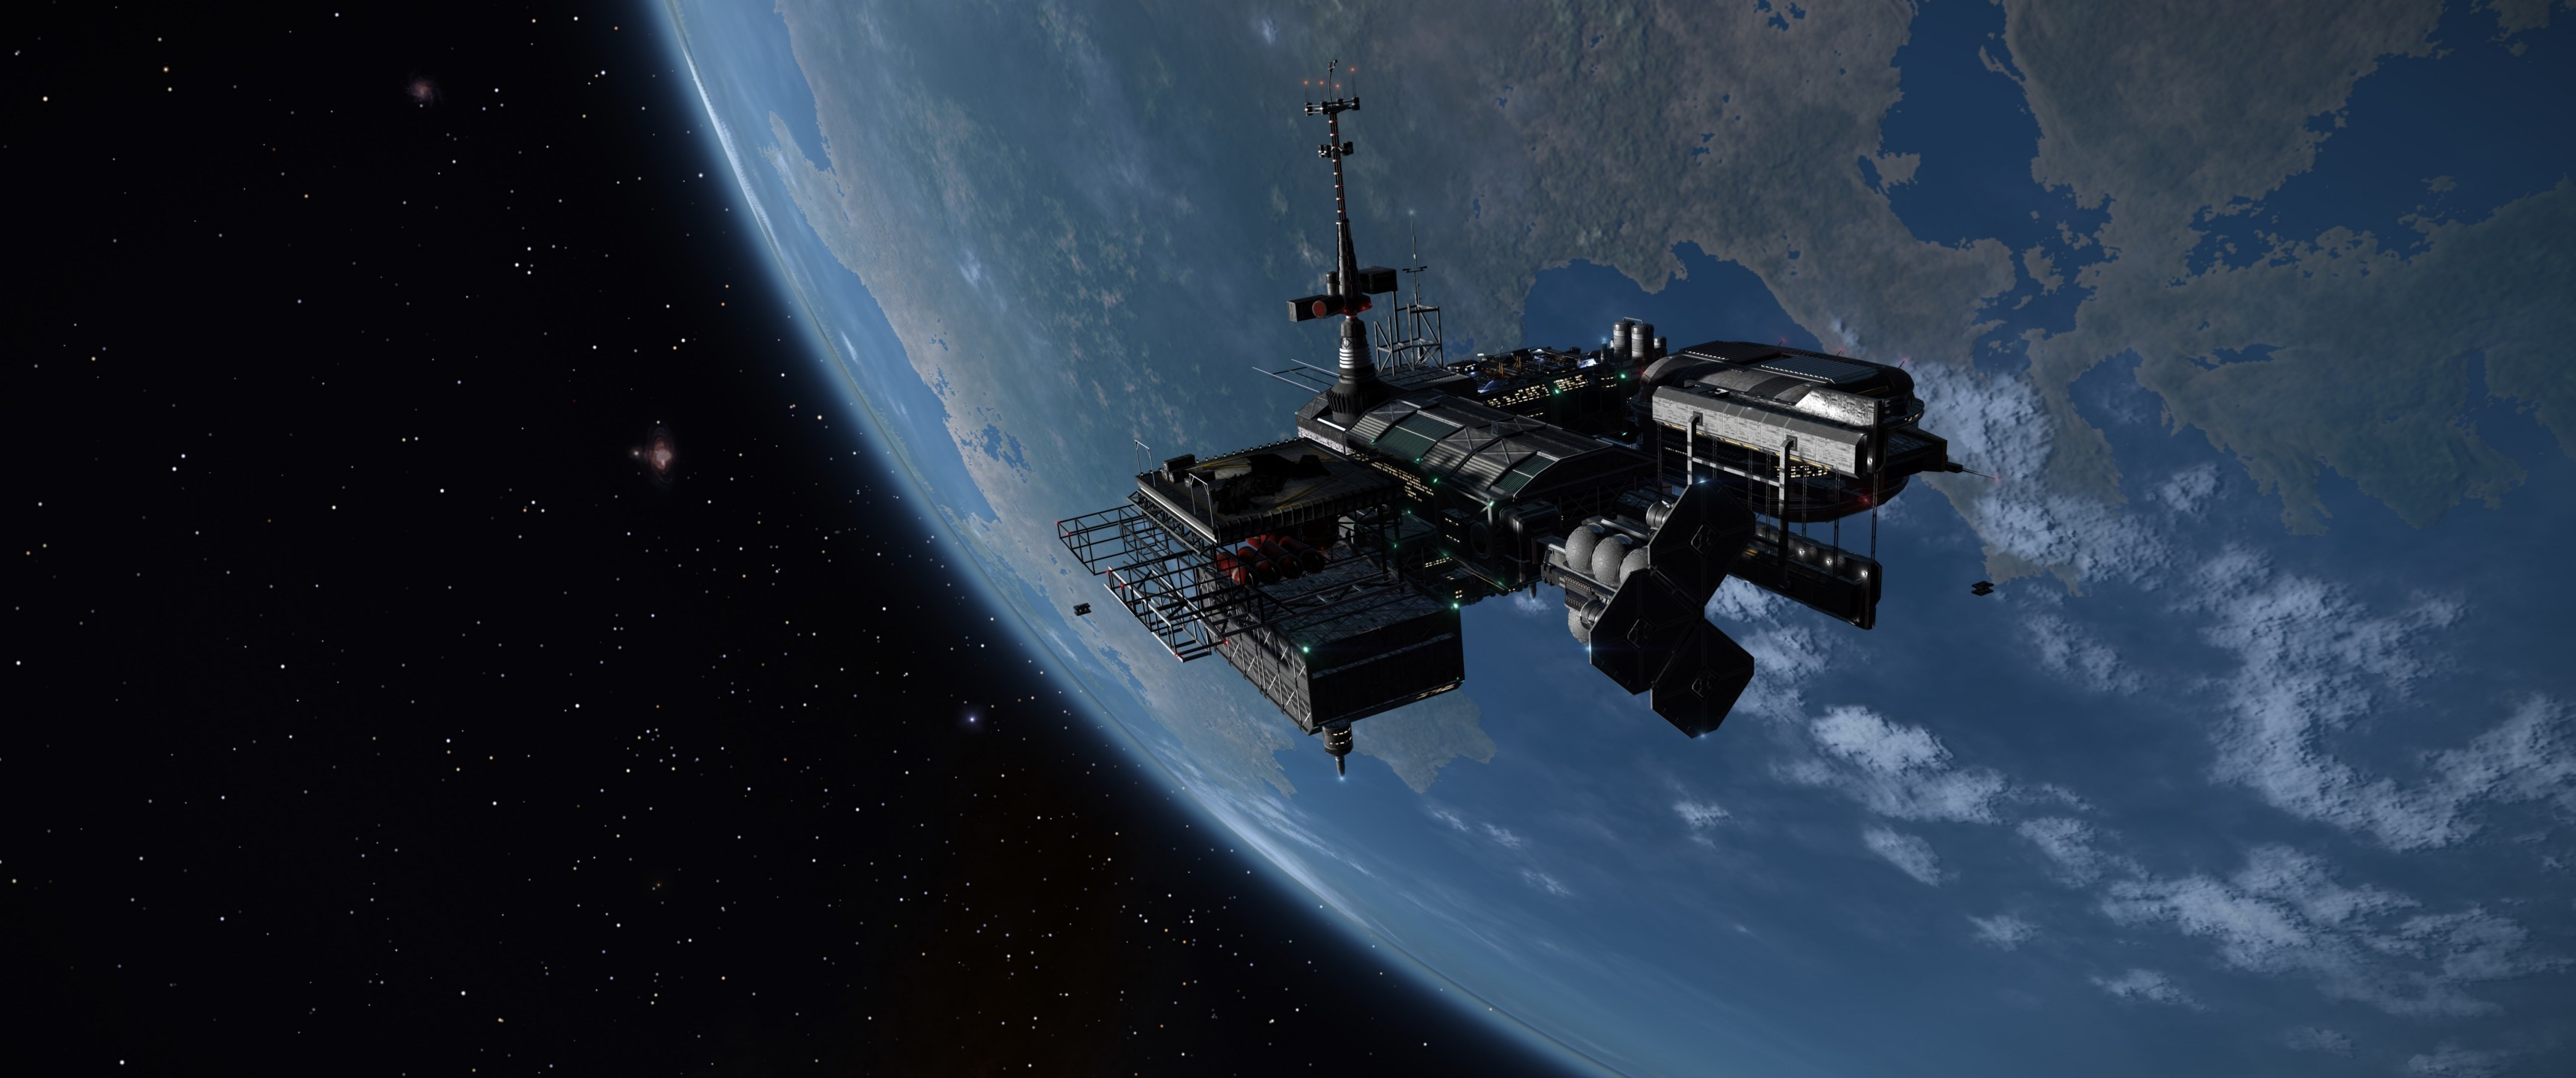 General 3440x1440 space Orbital Stations Earth